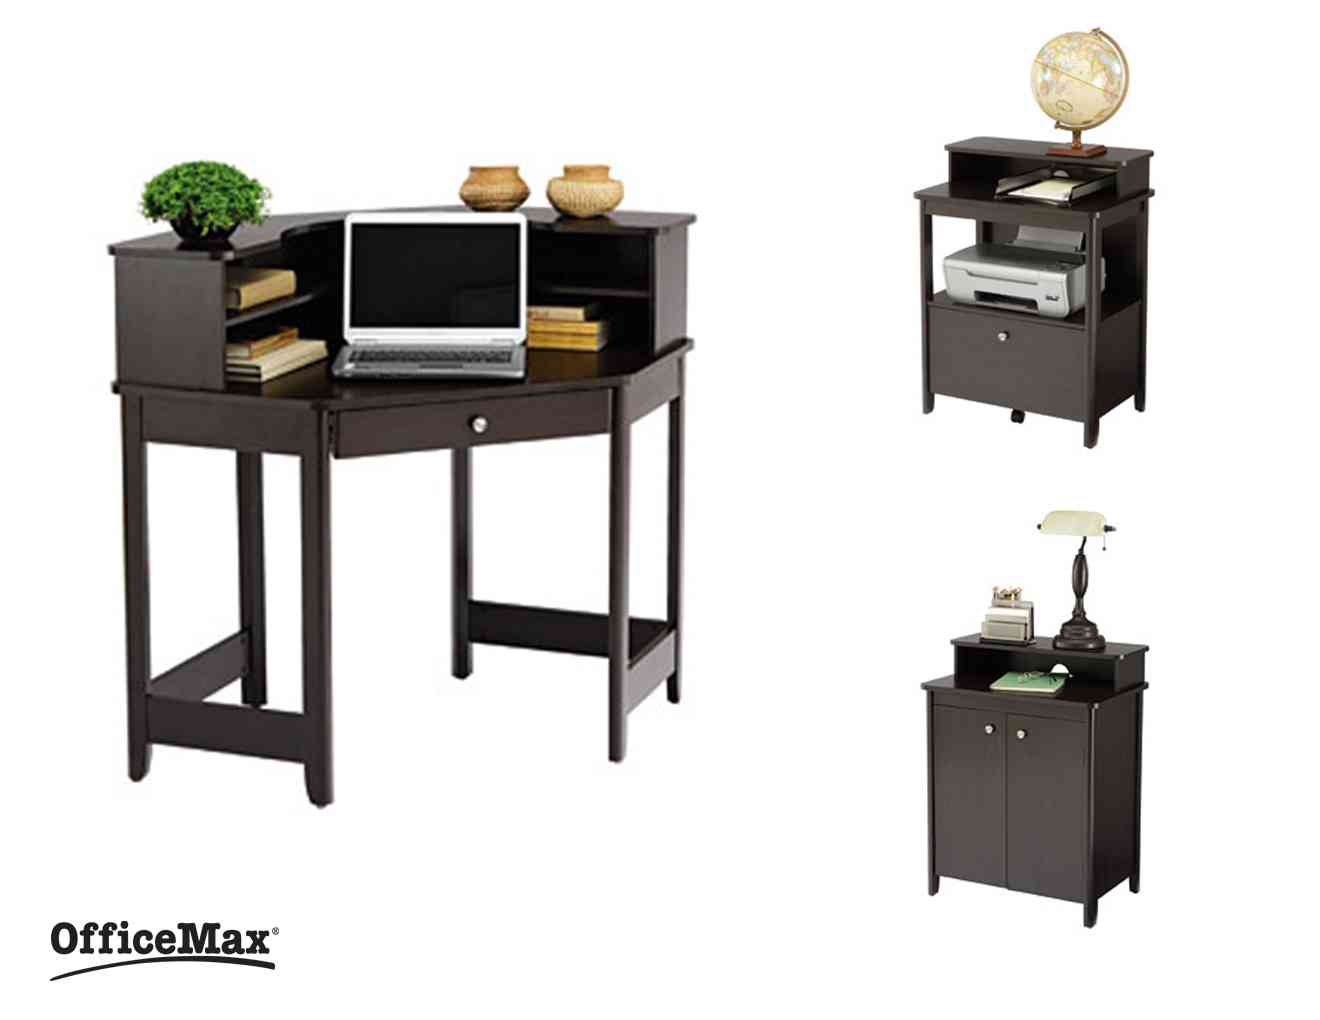 Corner office desk with storage images - Corner office desk ...